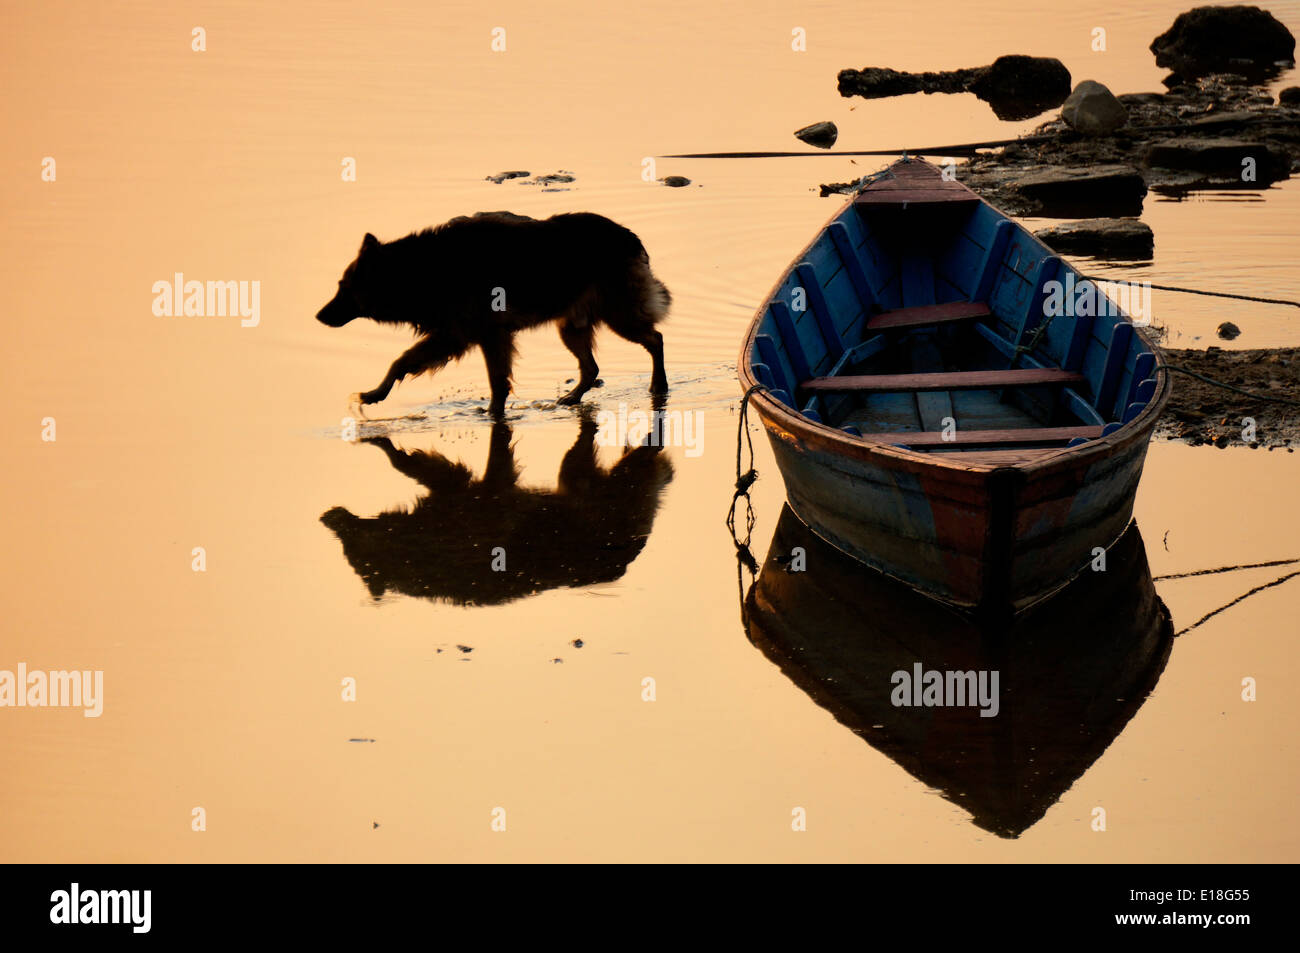 Dog is walking on water at the sunset - Stock Image